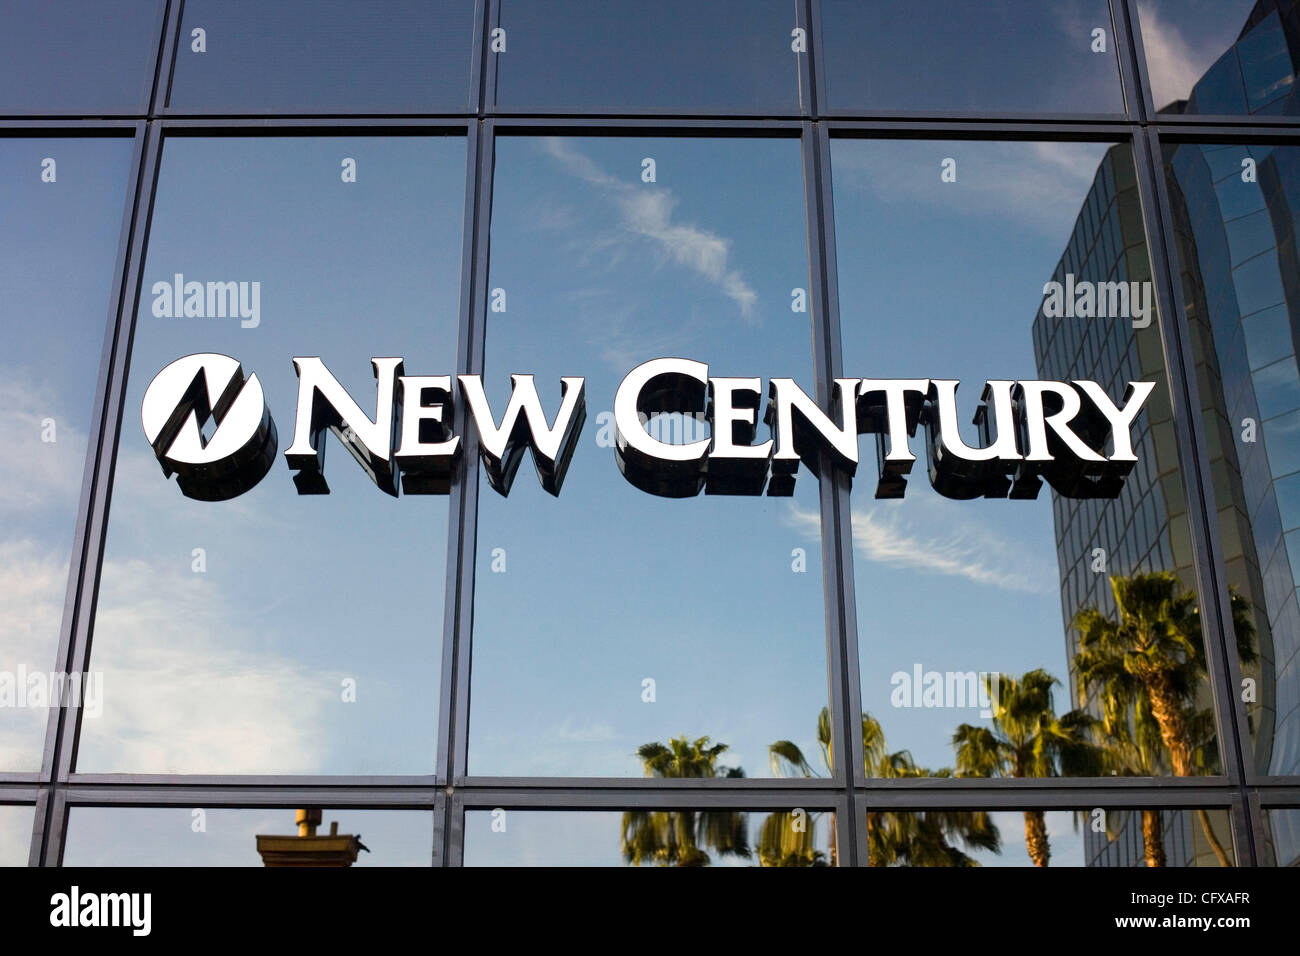 new century financial corporation Free essay: case 3 – new century financial corporation 1 describe and evaluate new century's business model new century financial.